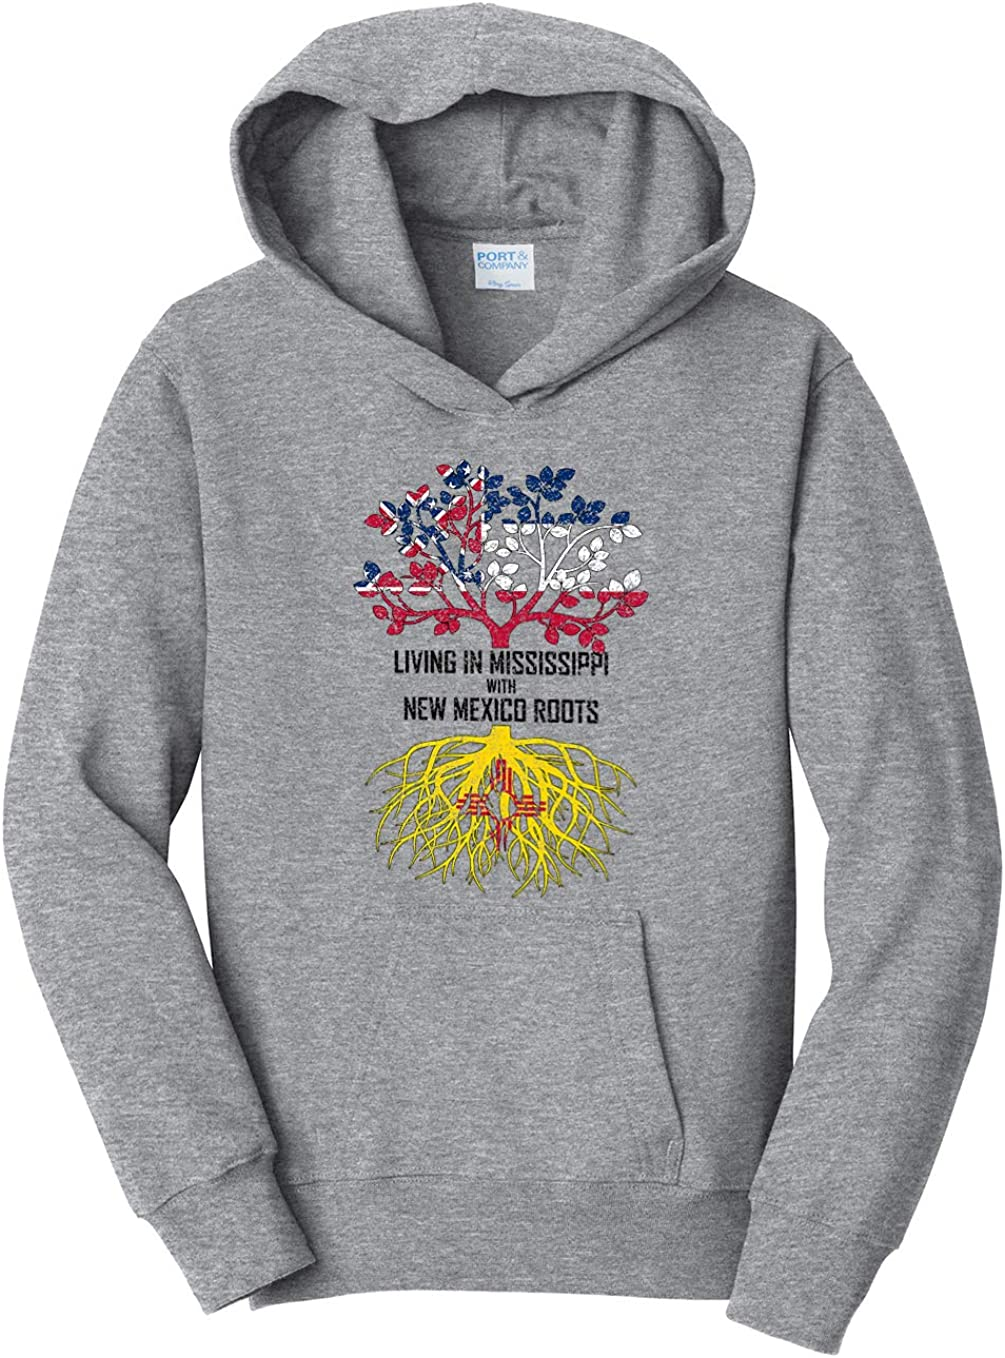 Tenacitee Girls Living in Mississippi with New Mexico Roots Hooded Sweatshirt